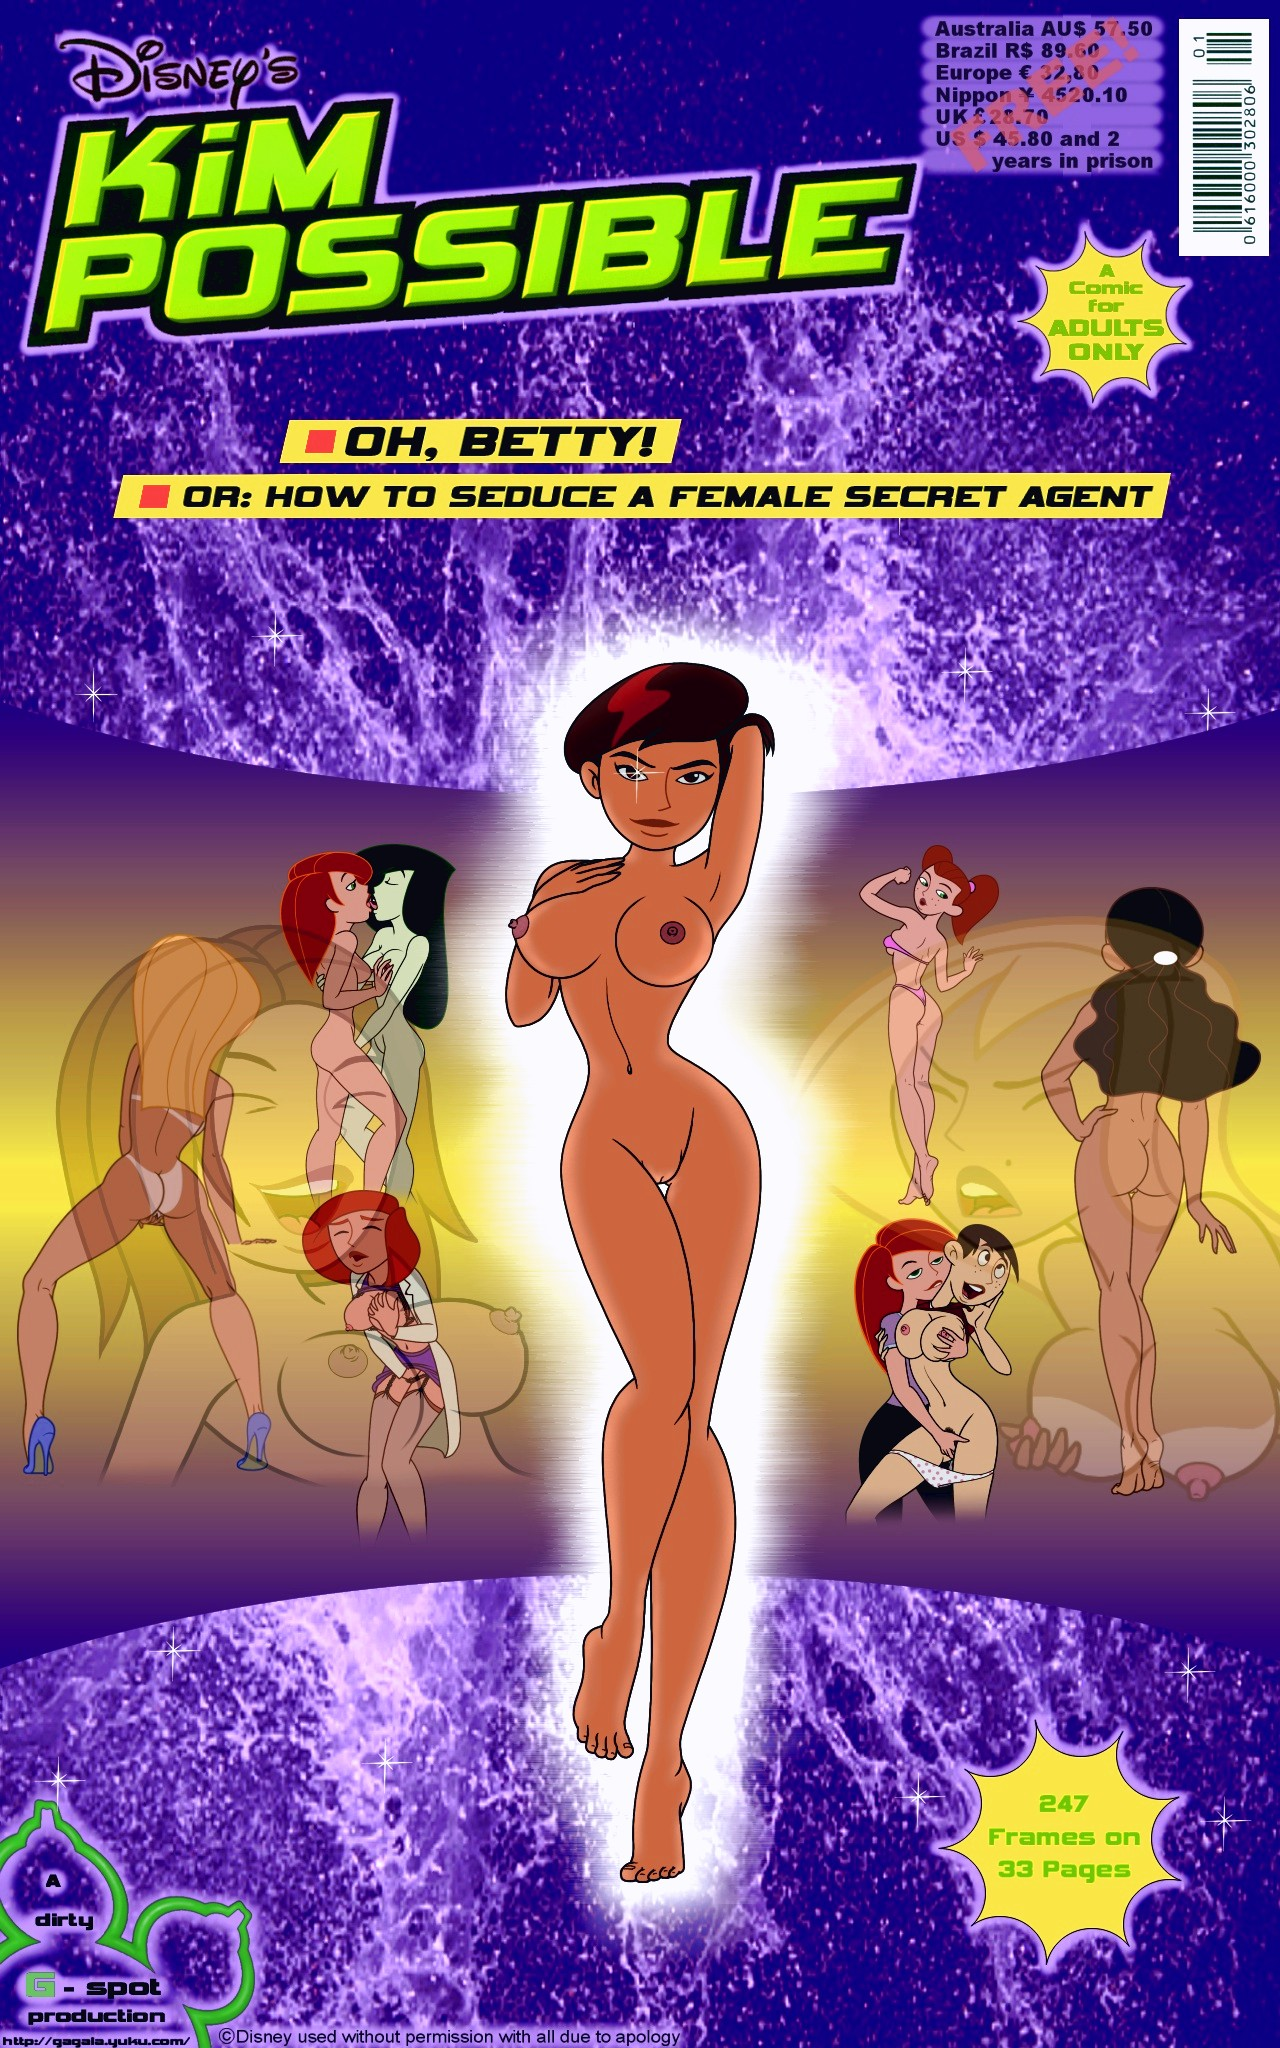 Oh, Betty! Or How to Seduce a Female Secret Agent porn comic page 001 on category Kim Possible